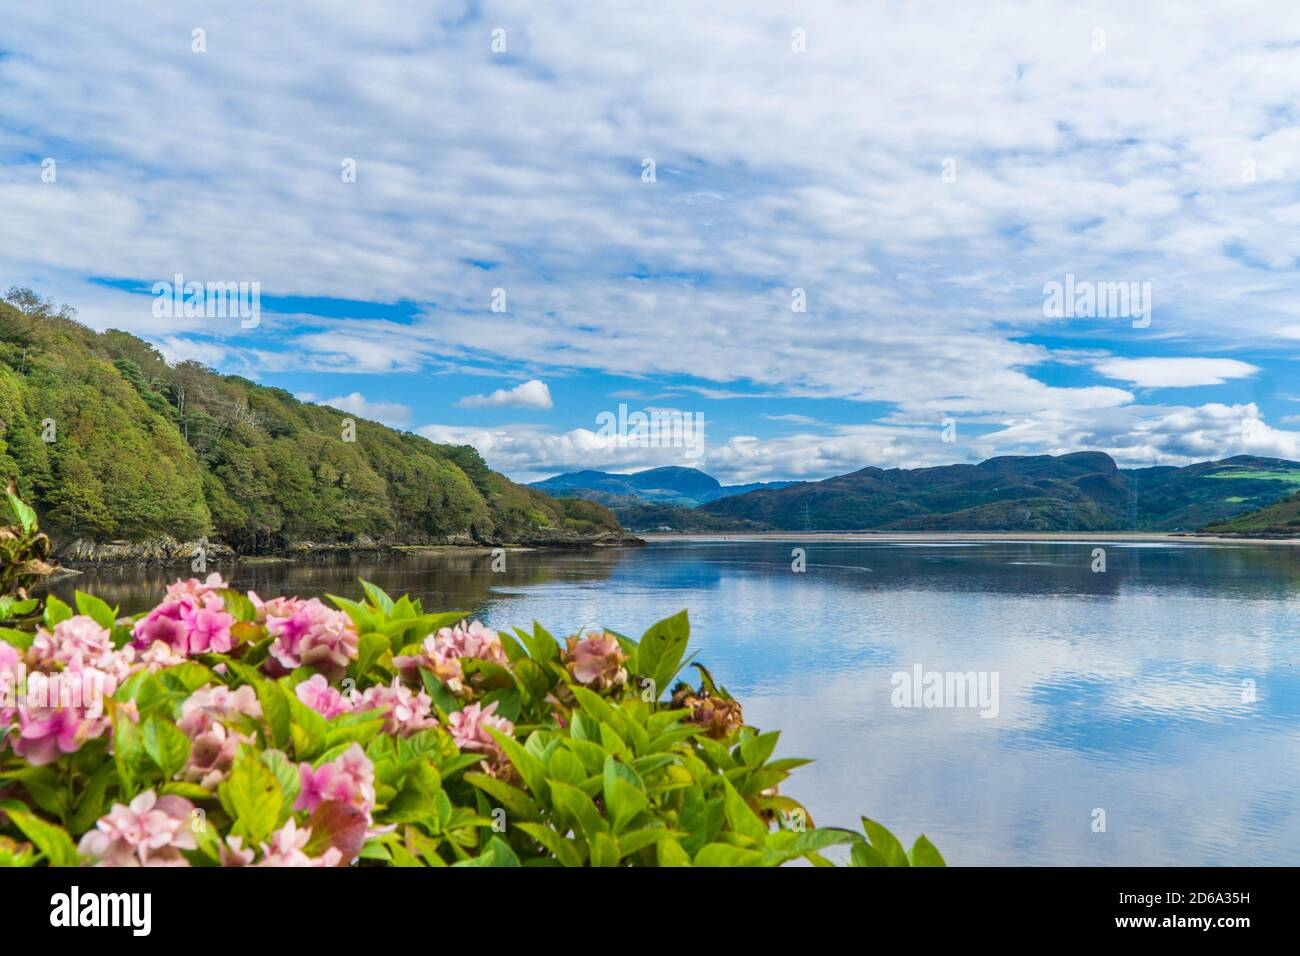 North westerly view along the River Dwyryd from Portmeirion towards Snowdonia National Park north Wales UK. August 2020. Stock Photo